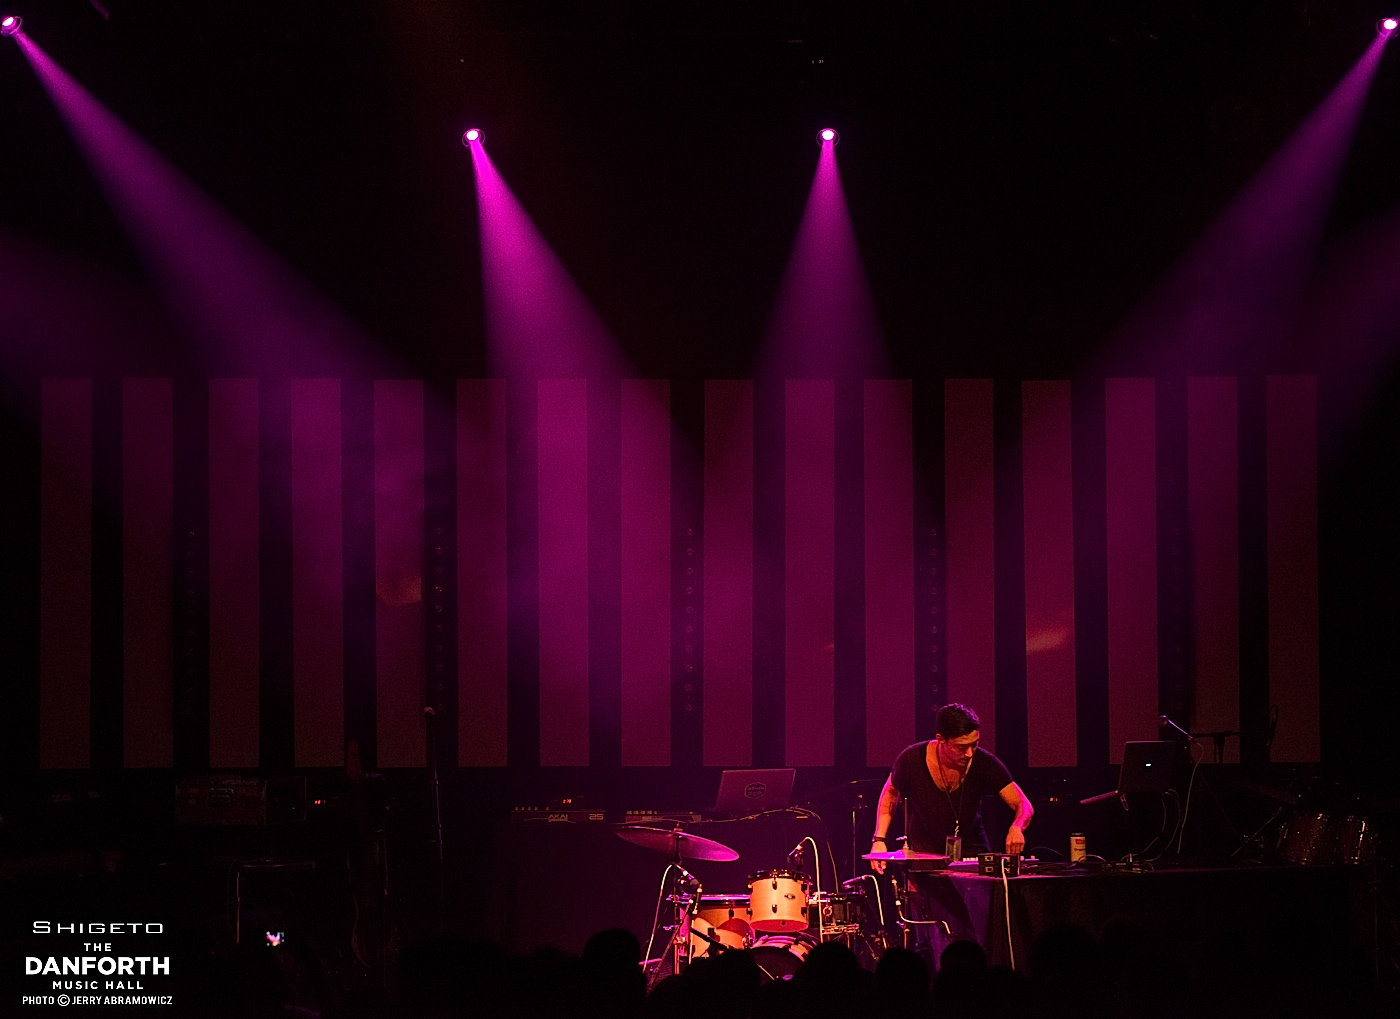 SHIGETO performs at The Danforth Music Hall.